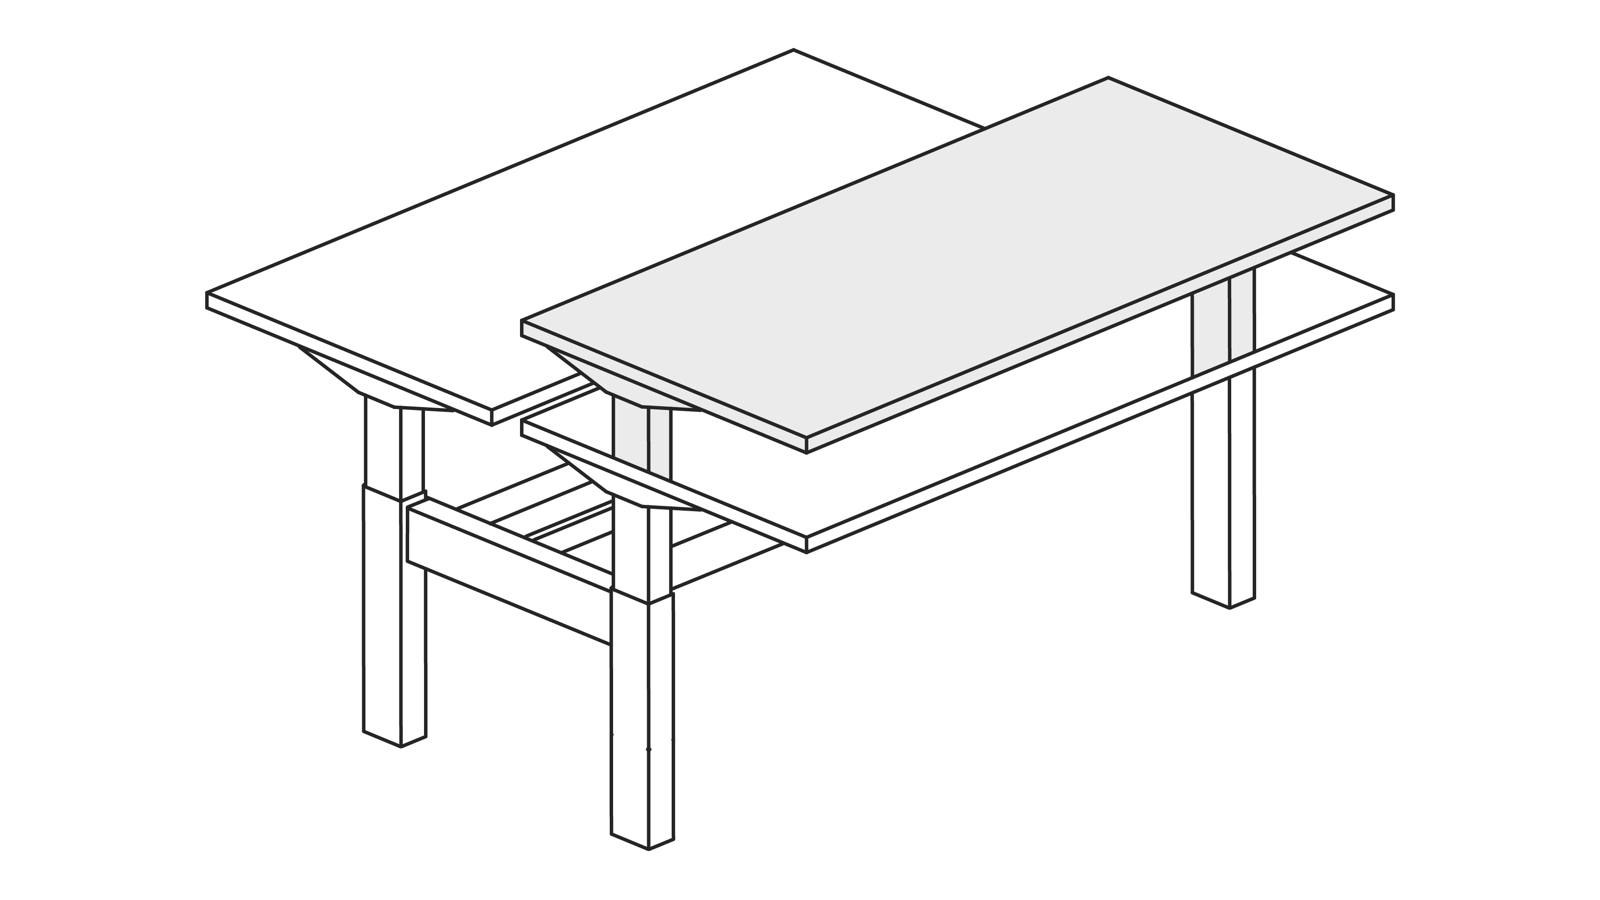 A line drawing of a Nevi Link standing desk system with back-to-back rectangular work surfaces. One of the desks is raised to standing height.